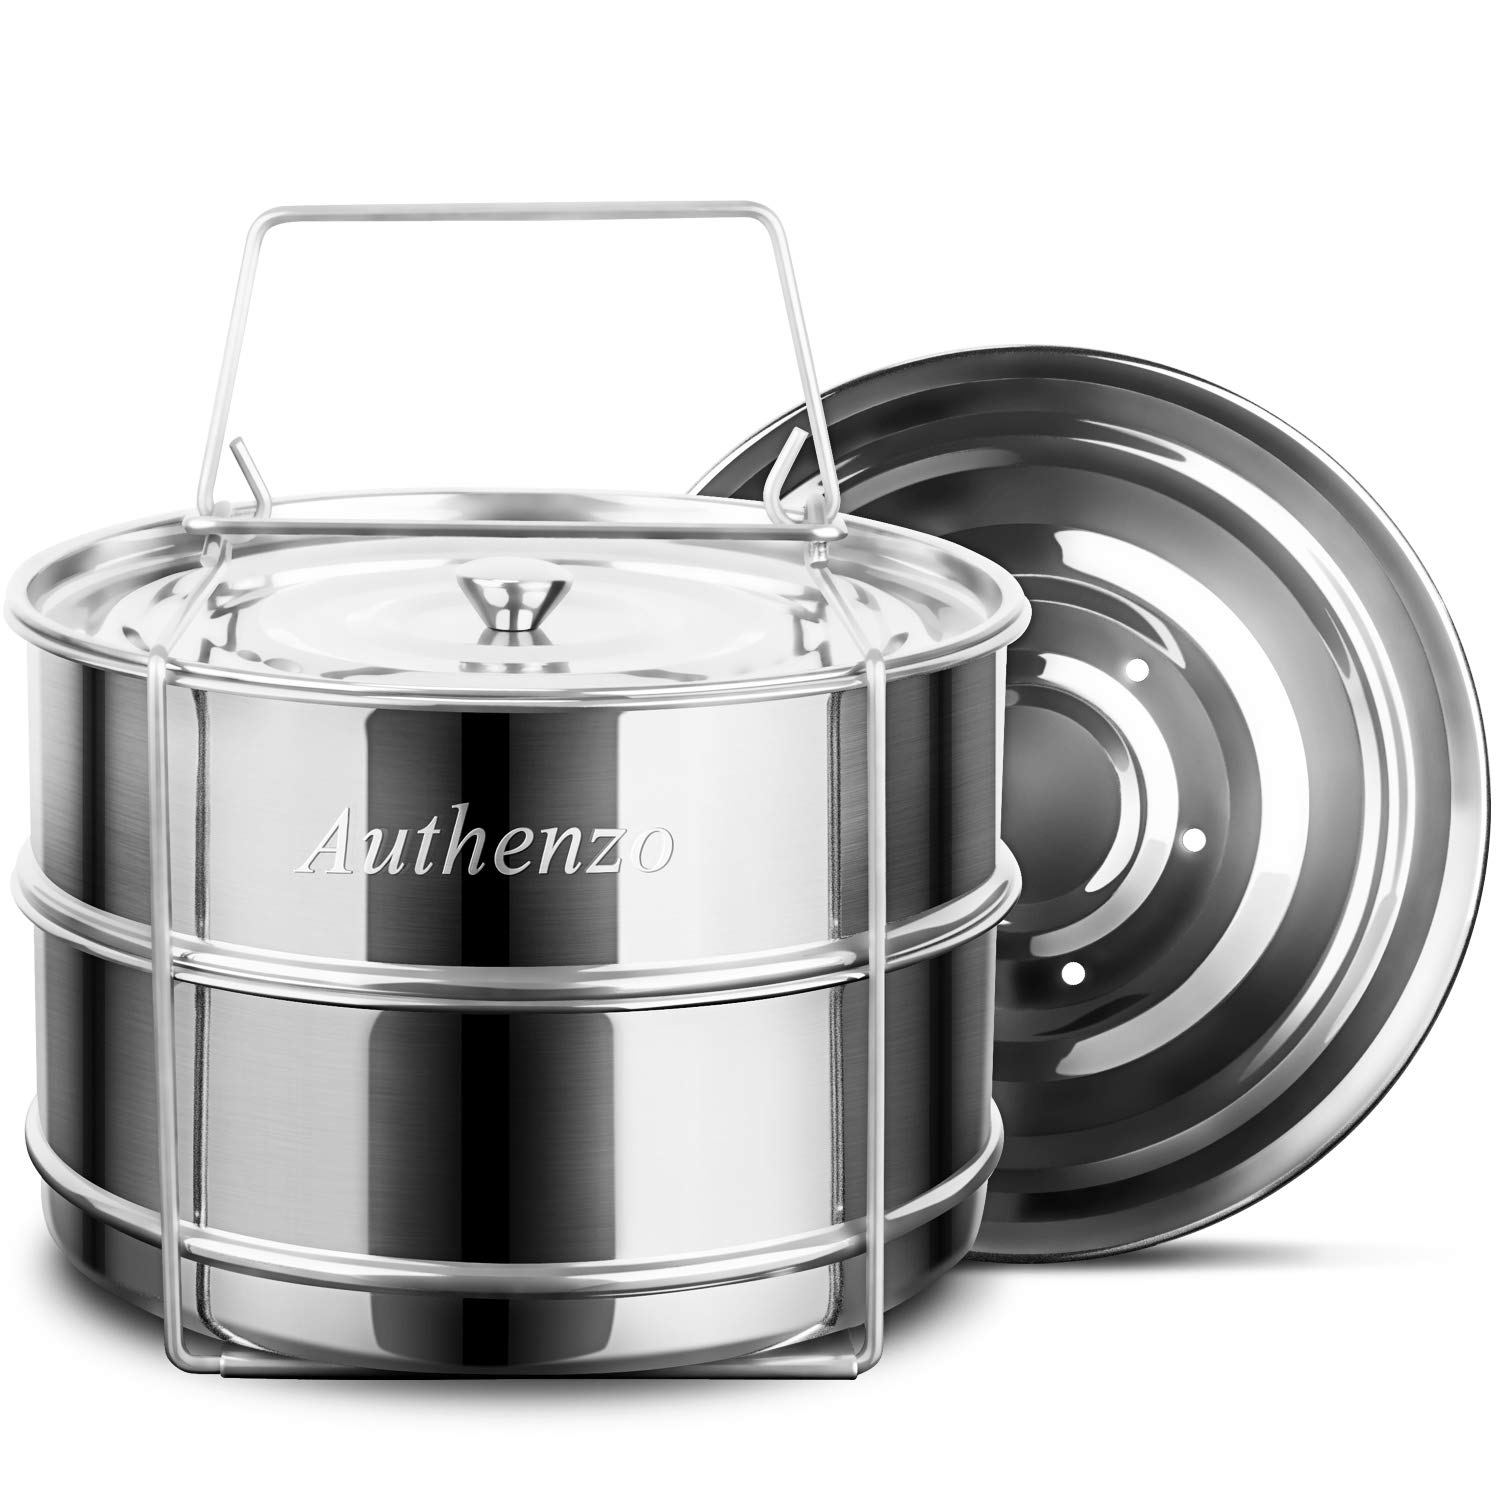 Authenzo Stackable Steamer Insert Pans (Two Layers) with Sling for Instant Pot Accessories Stainless Steel Food Pressure Cooker, Baking Upgraded Interchangeable Lids Included, 6/8 QT